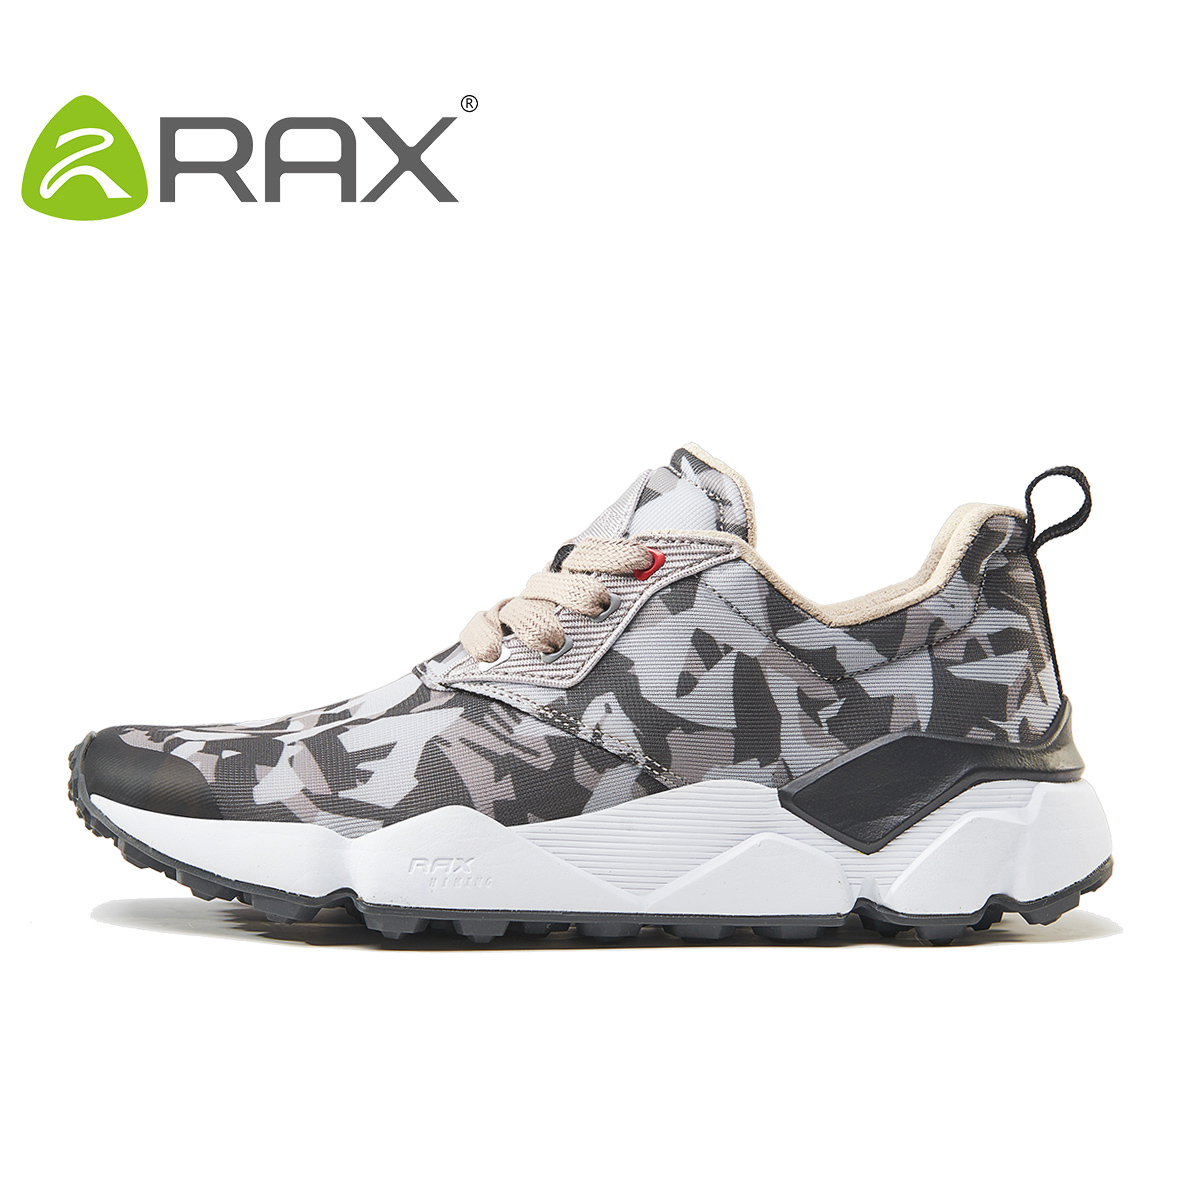 RAX New 2017 womem Running Shoes Outdoor Men Sport Sneakers Winter Women Breathable Athletic Shoes Running Trainers Man Women rax latest running shoes for men sneakers women running shoes men trainers outdoor athletic sport shoes zapatillas hombre